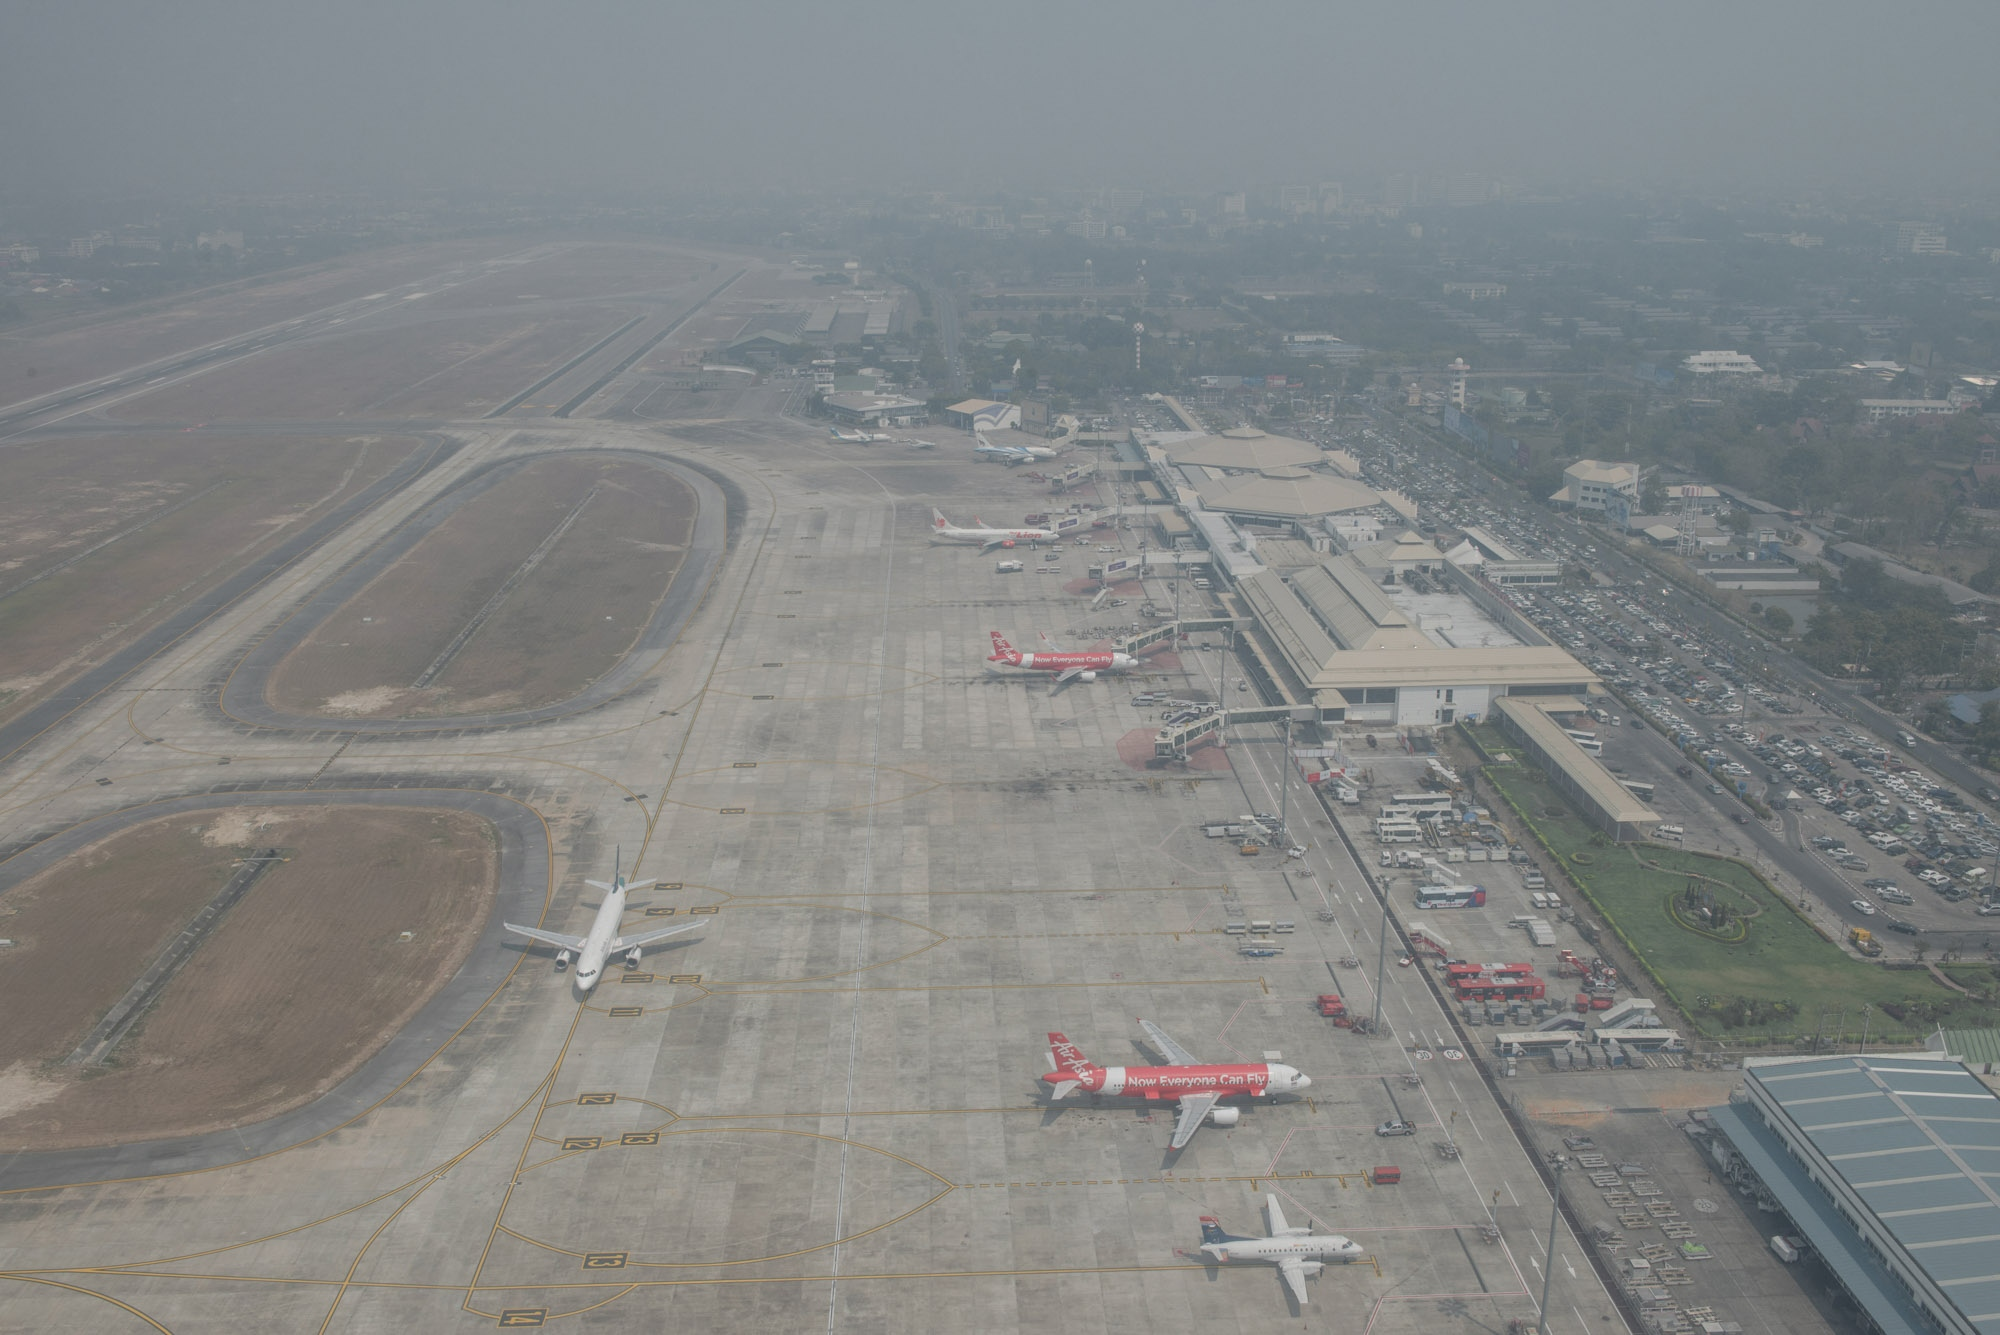 City areas are covered in haze. Flights have been scrapped or delayed as misty fog hung over the airport.